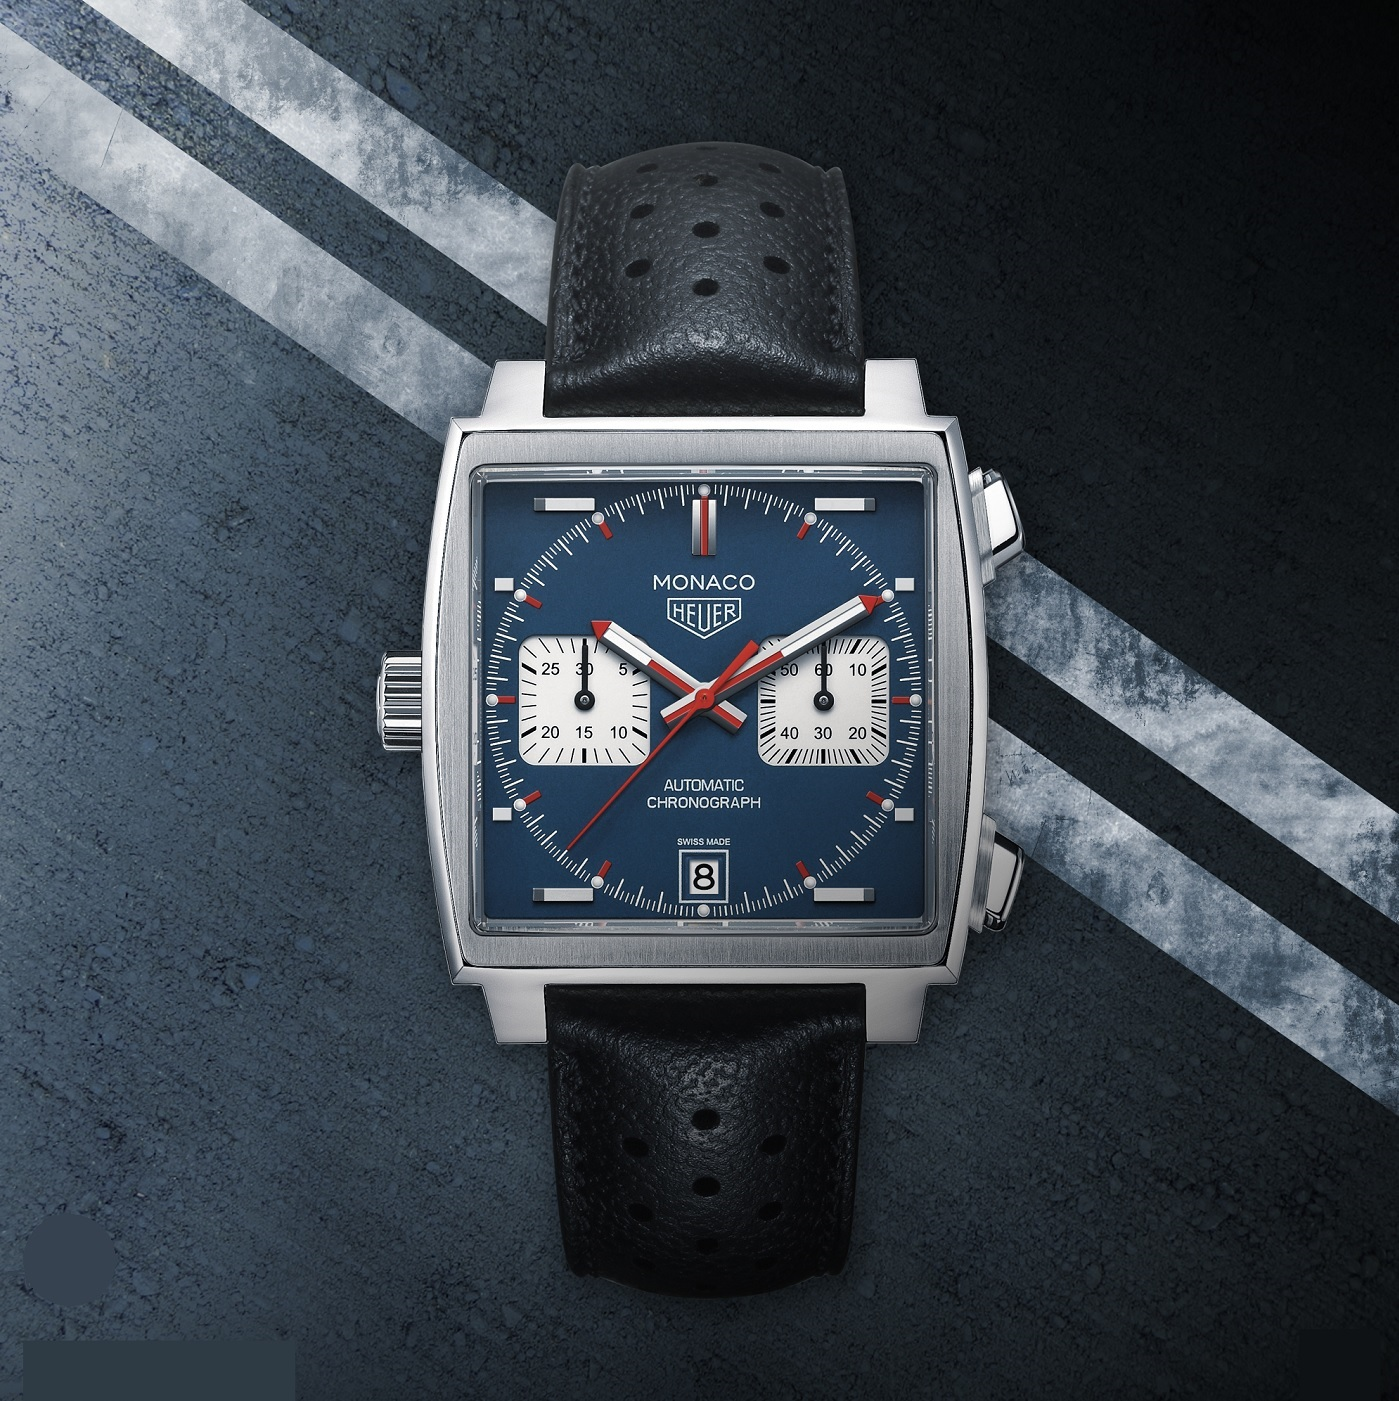 080217-top-10-motorsports-watches-heuer-monaco-ig-1